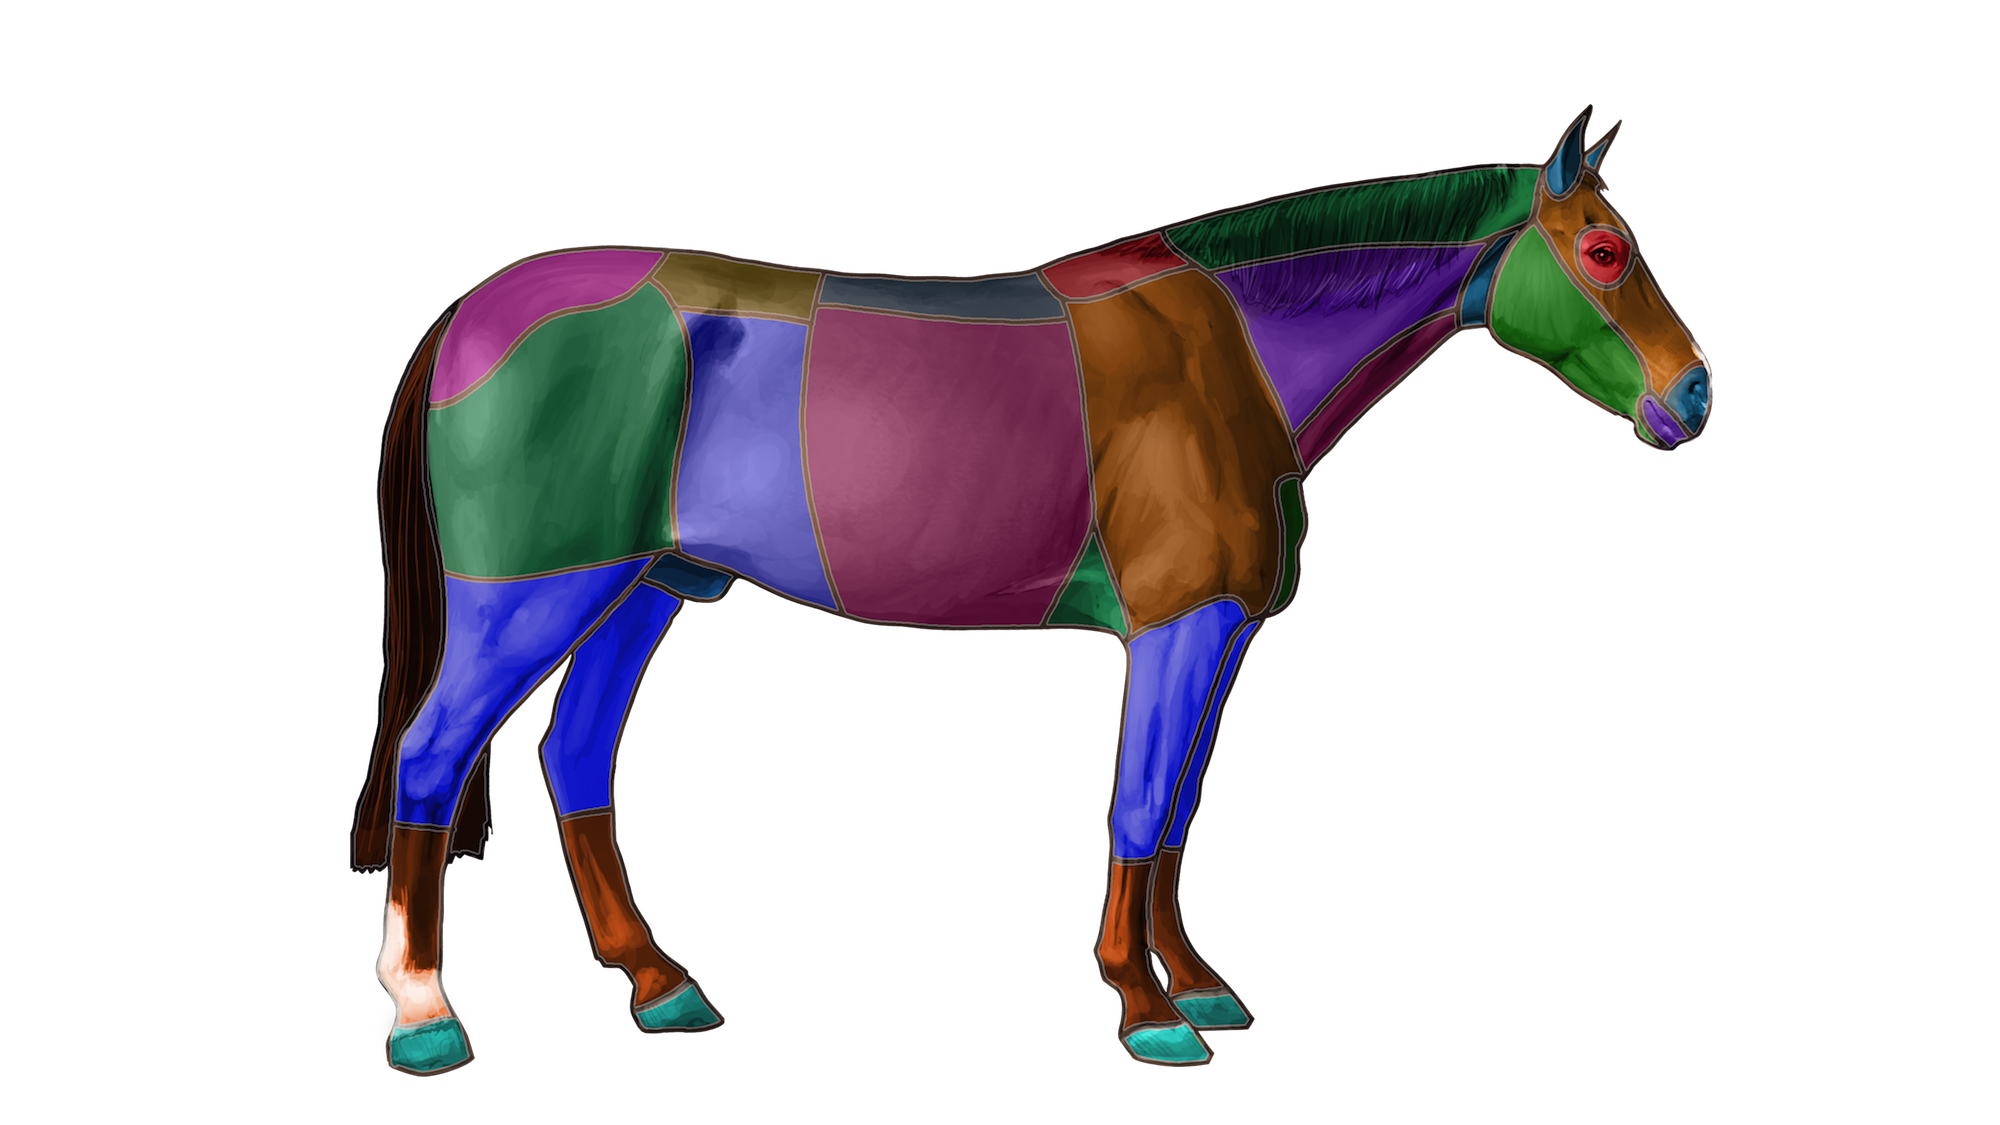 You can search our website for information using our equine models. This is just one of many features we will add to the mobile app in the future.